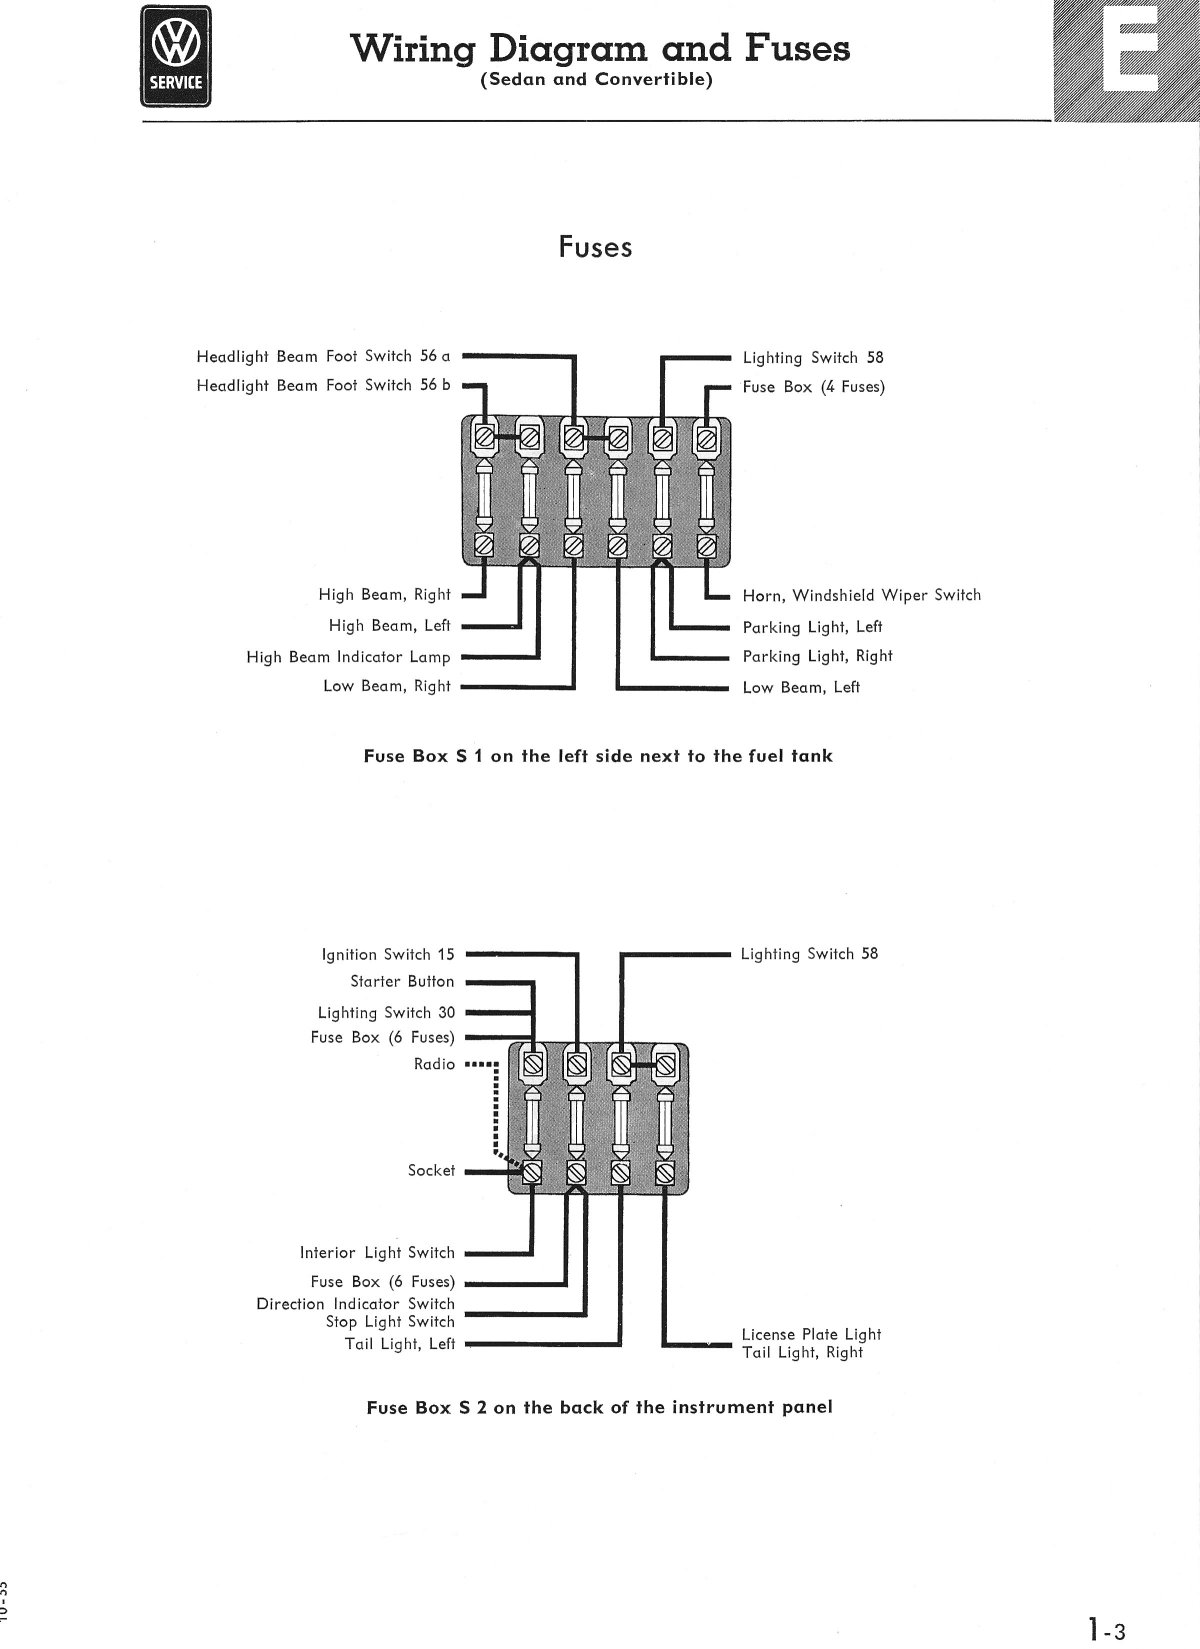 Type 1 Wiring Diagrams Malibu Fuse Box Diagram